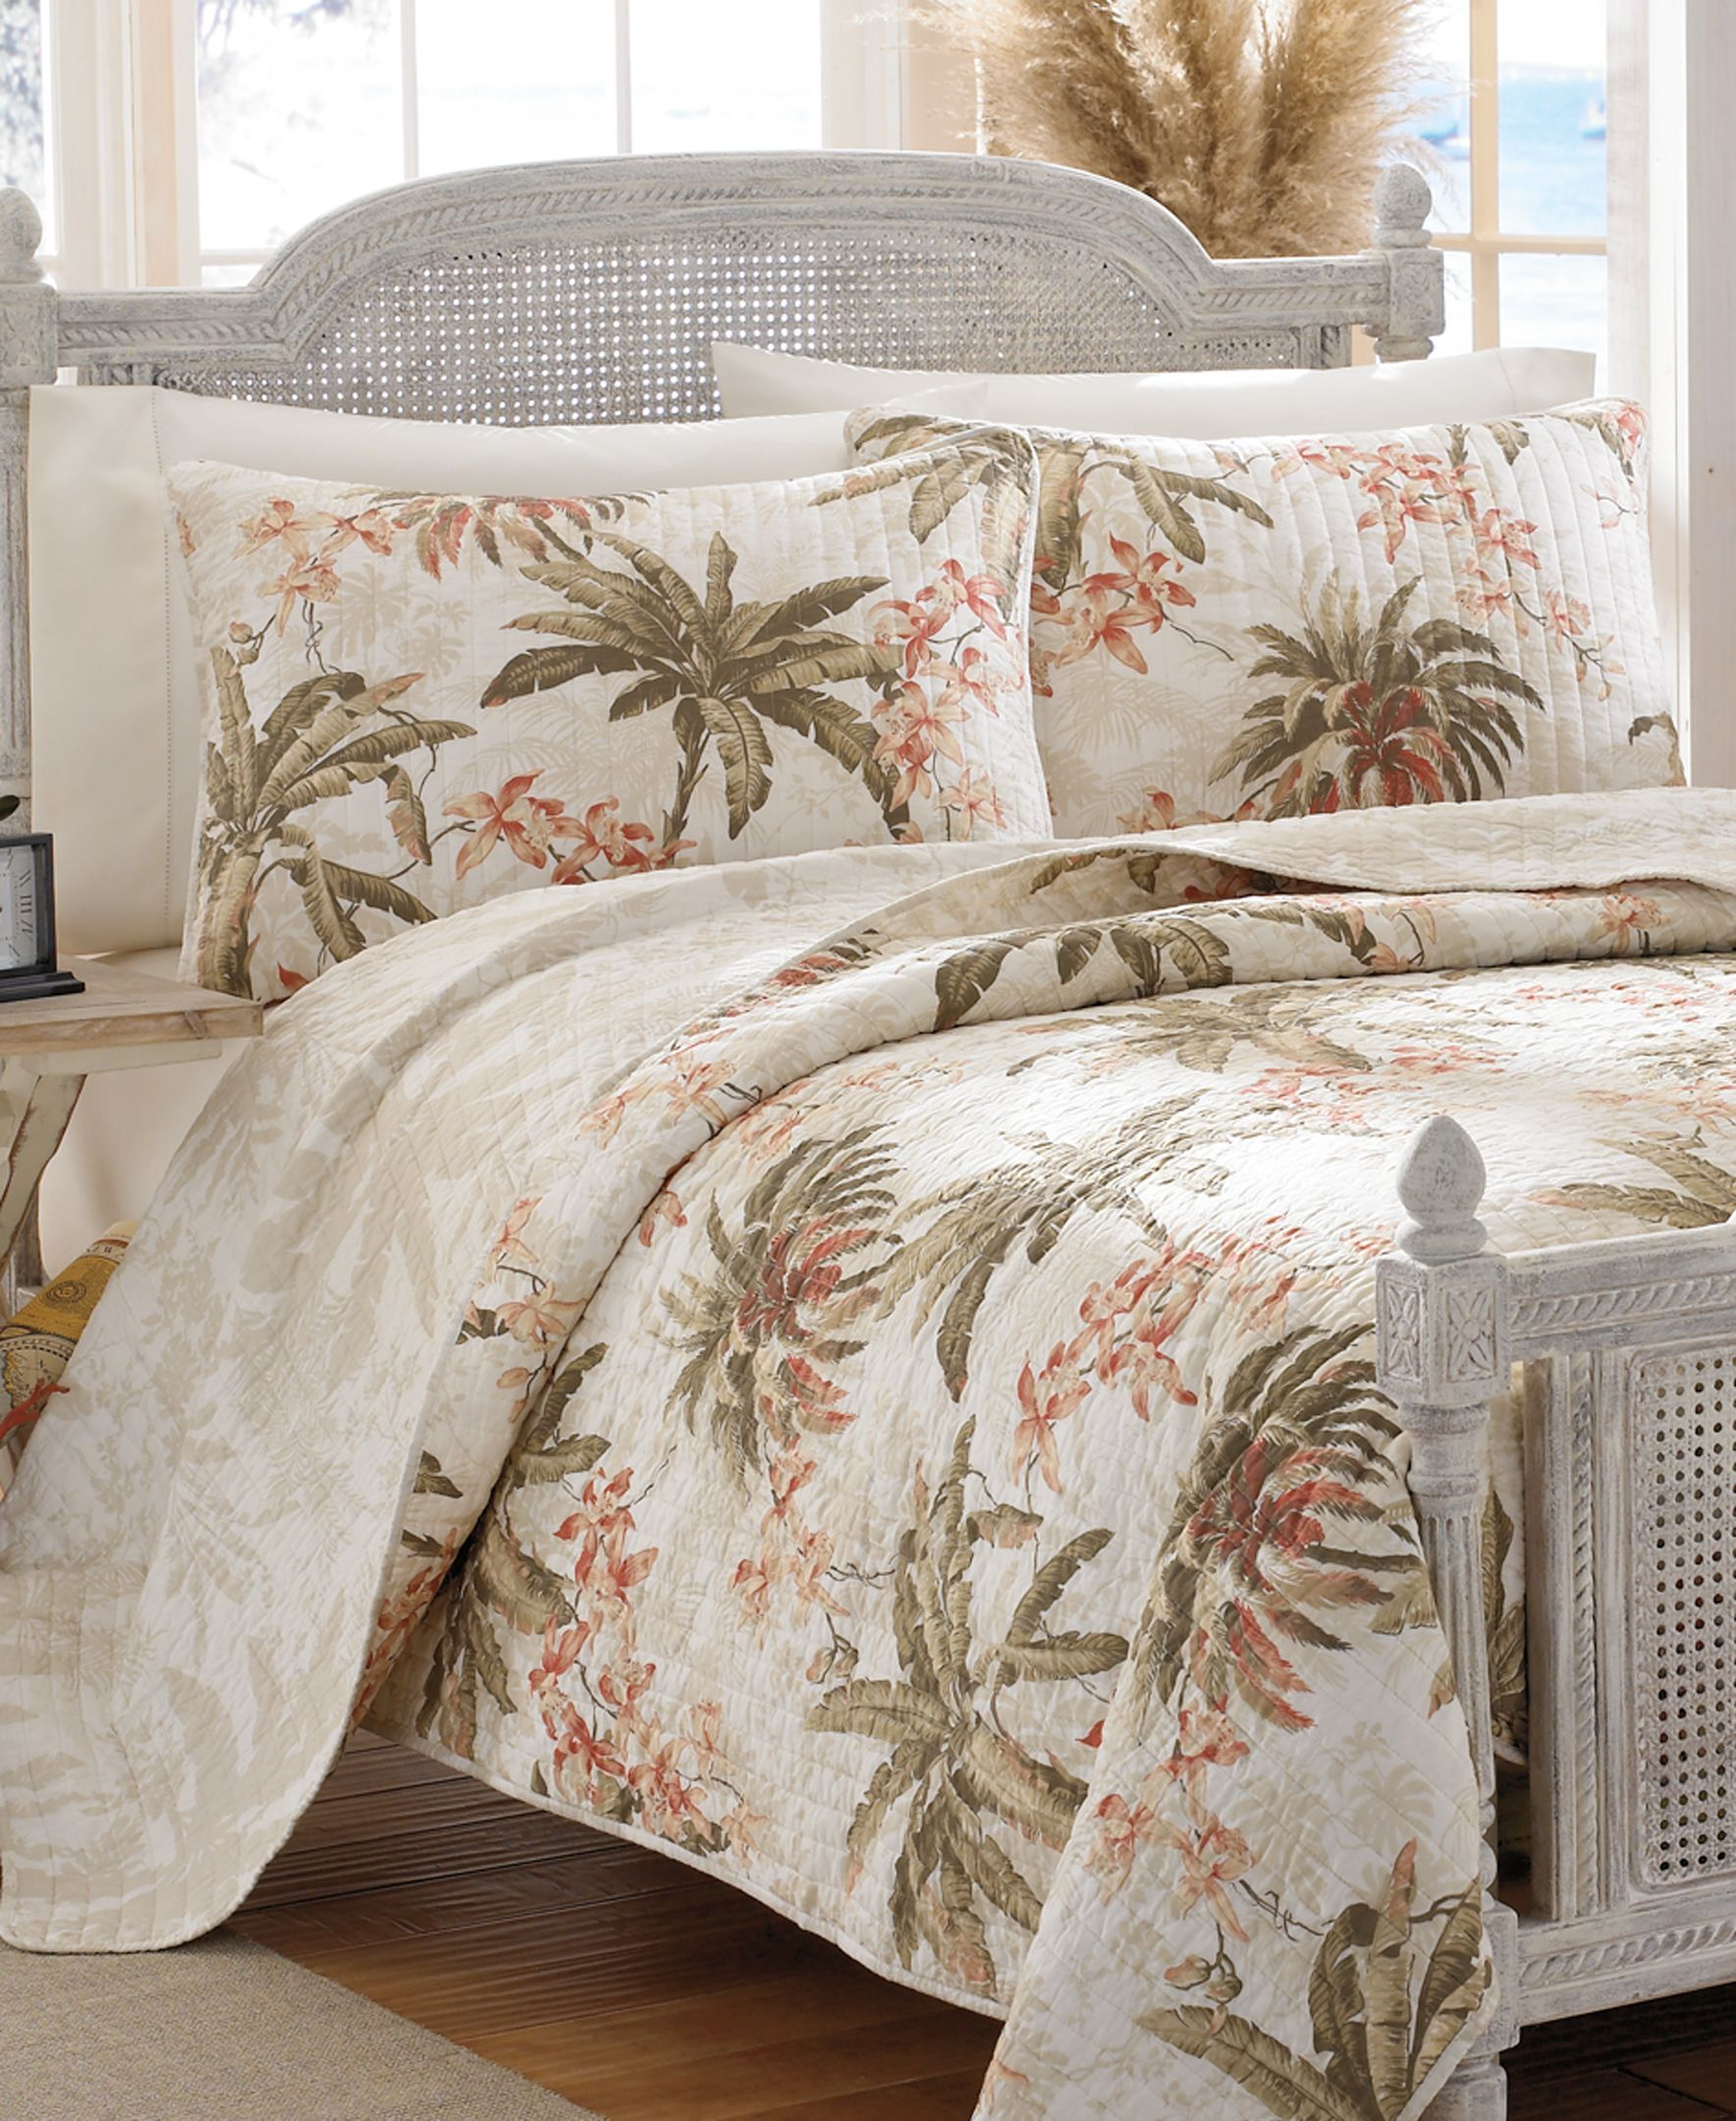 Tommy Bahama Home Bonnie Cove King Quilt Tommy Bahama Home Bed